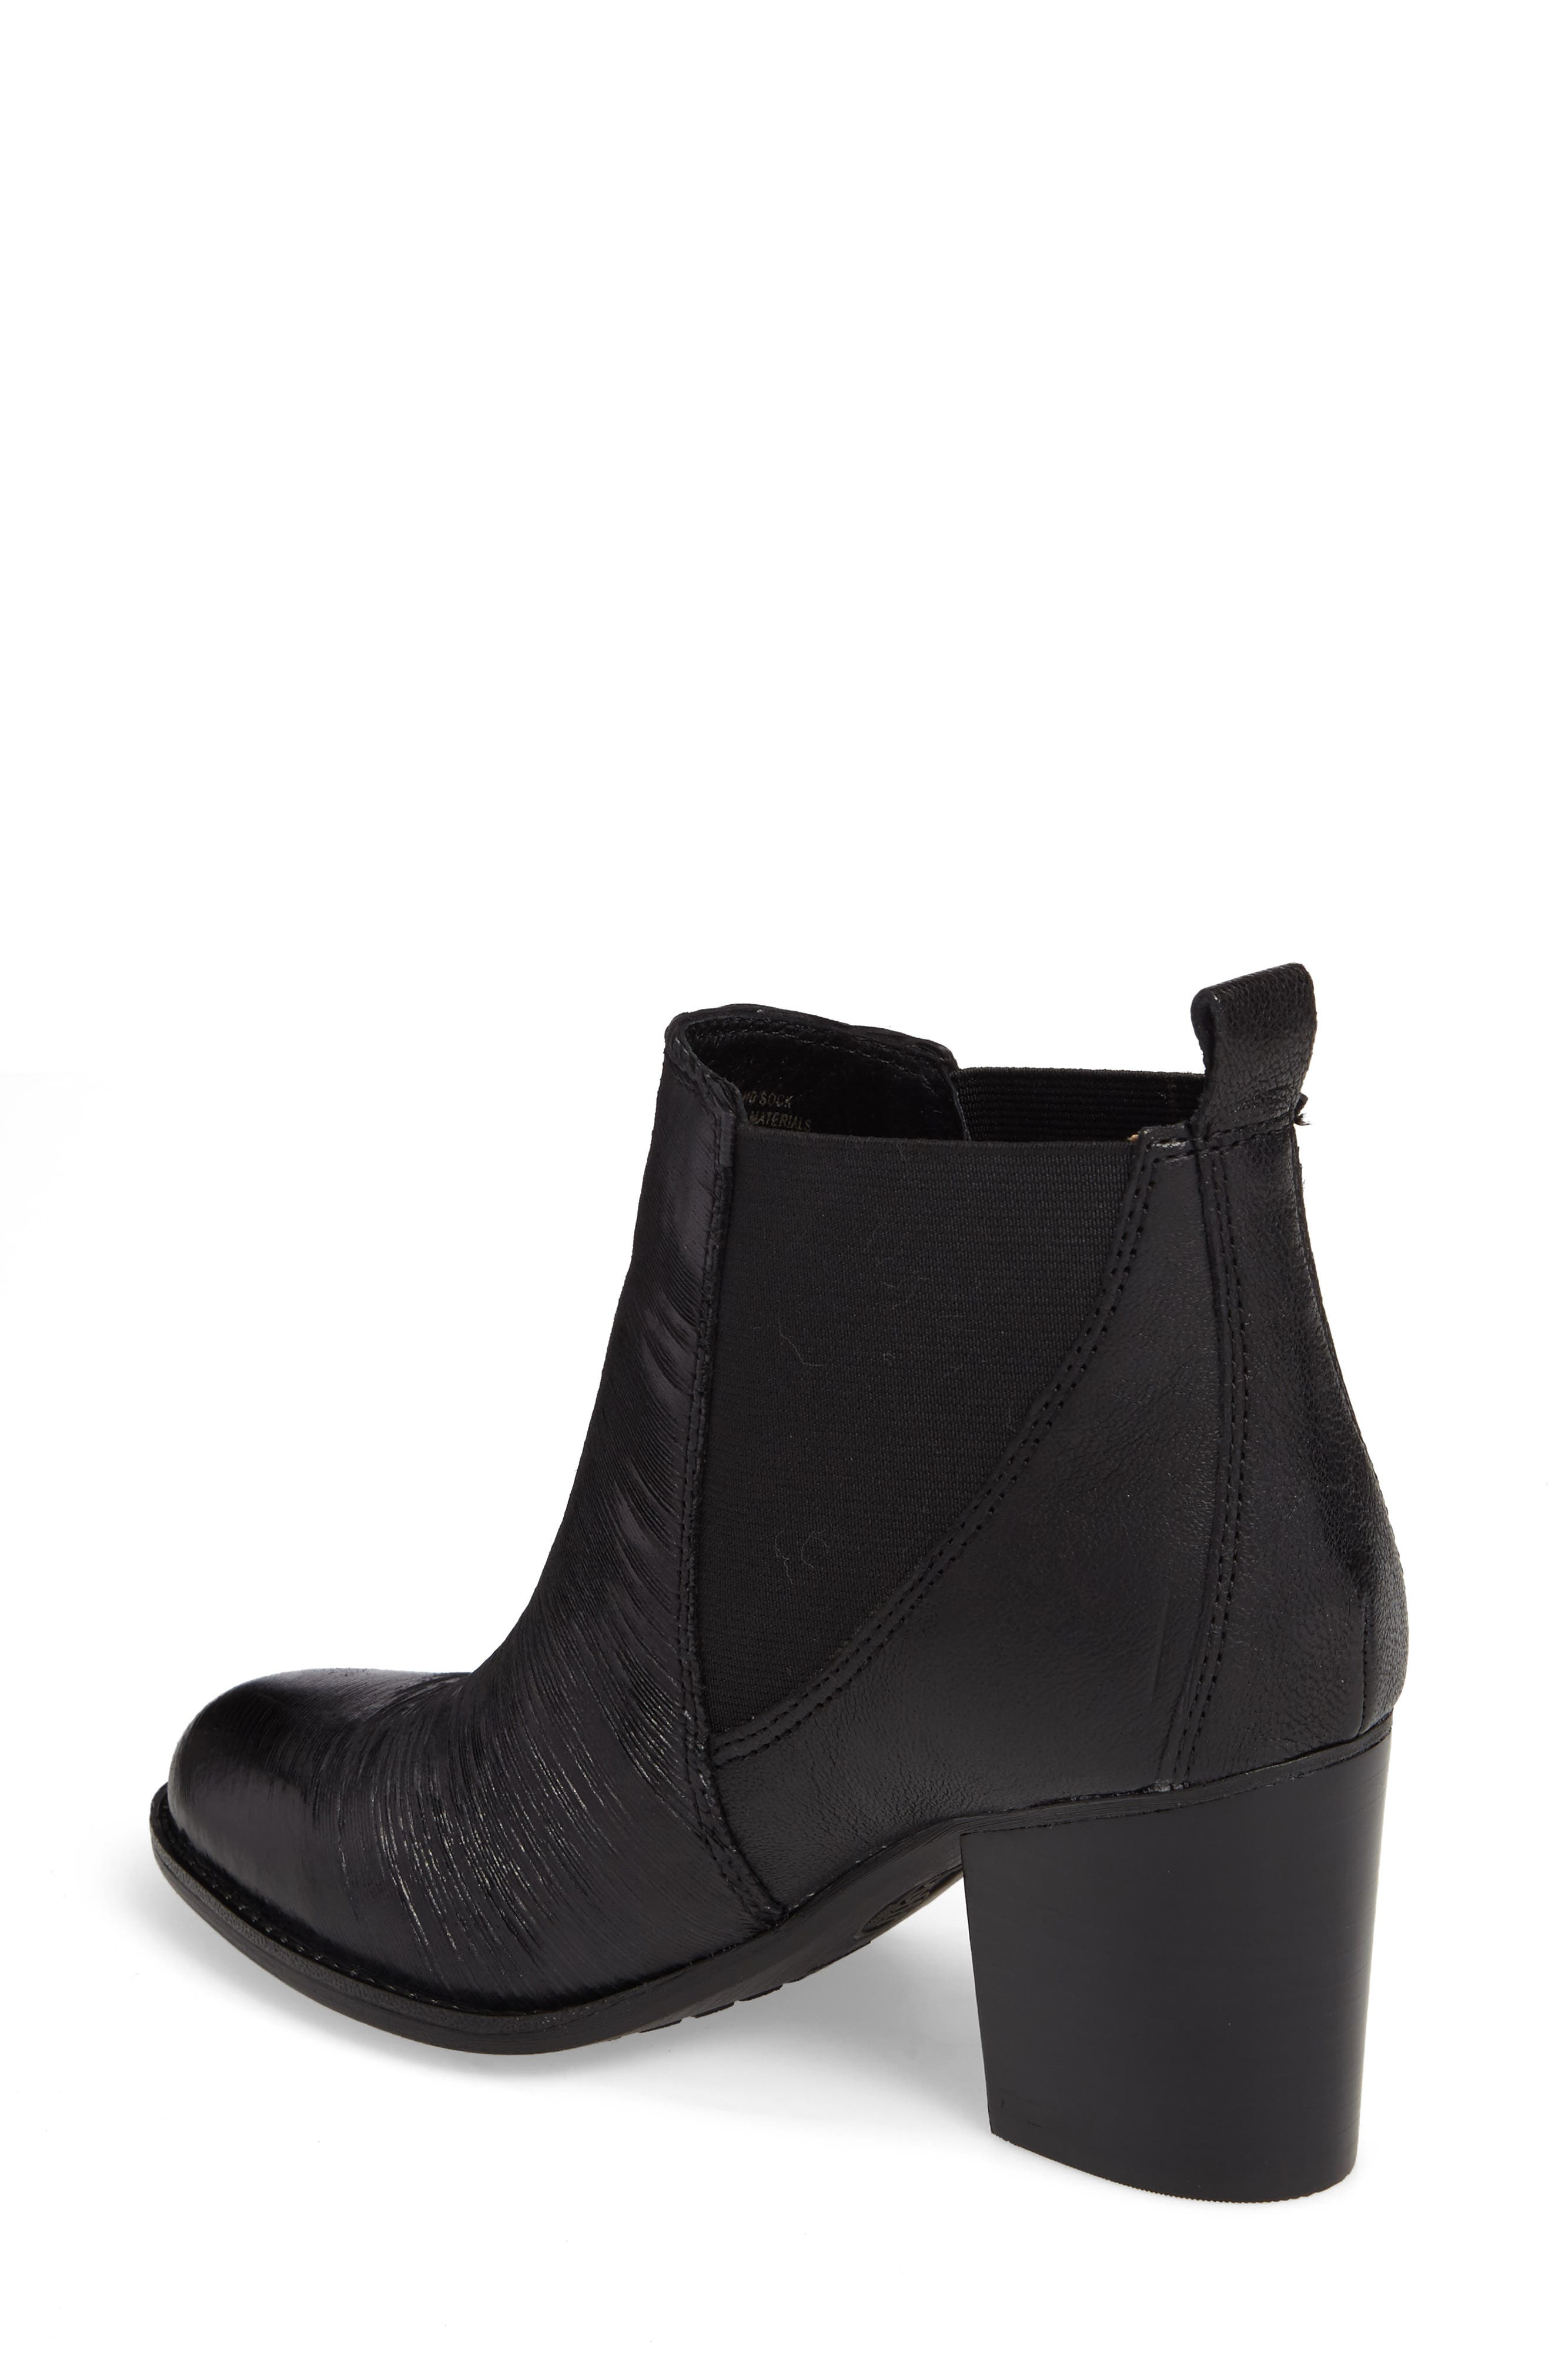 Welling Bootie,                             Alternate thumbnail 2, color,                             Black Leather